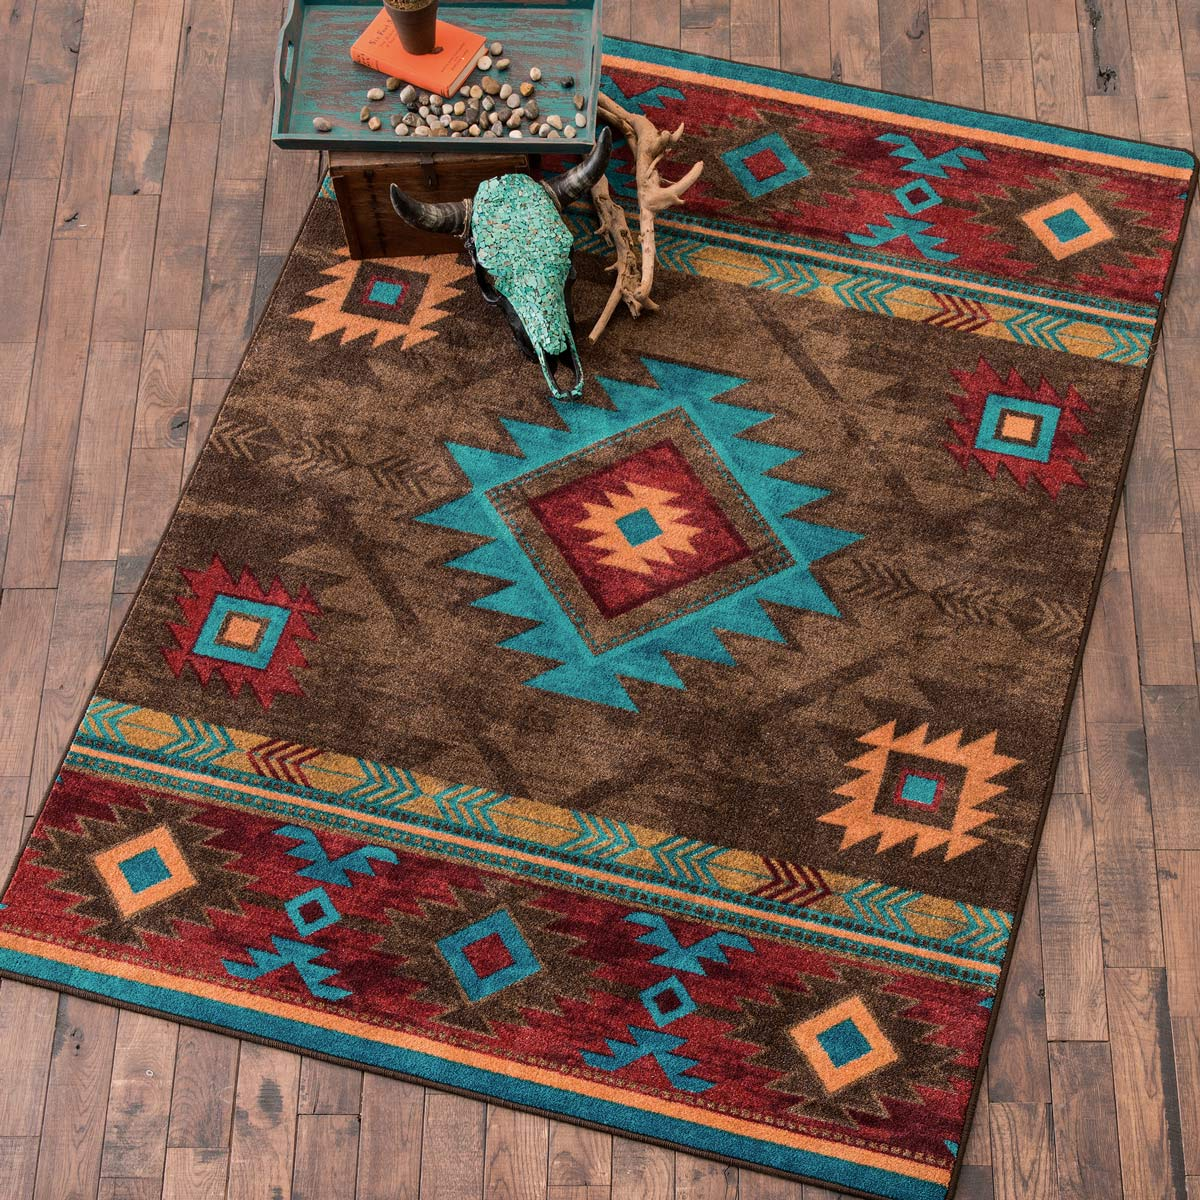 Southwest Rugs 4 X 5 Whiskey River Turquoise Ruglone Star Western